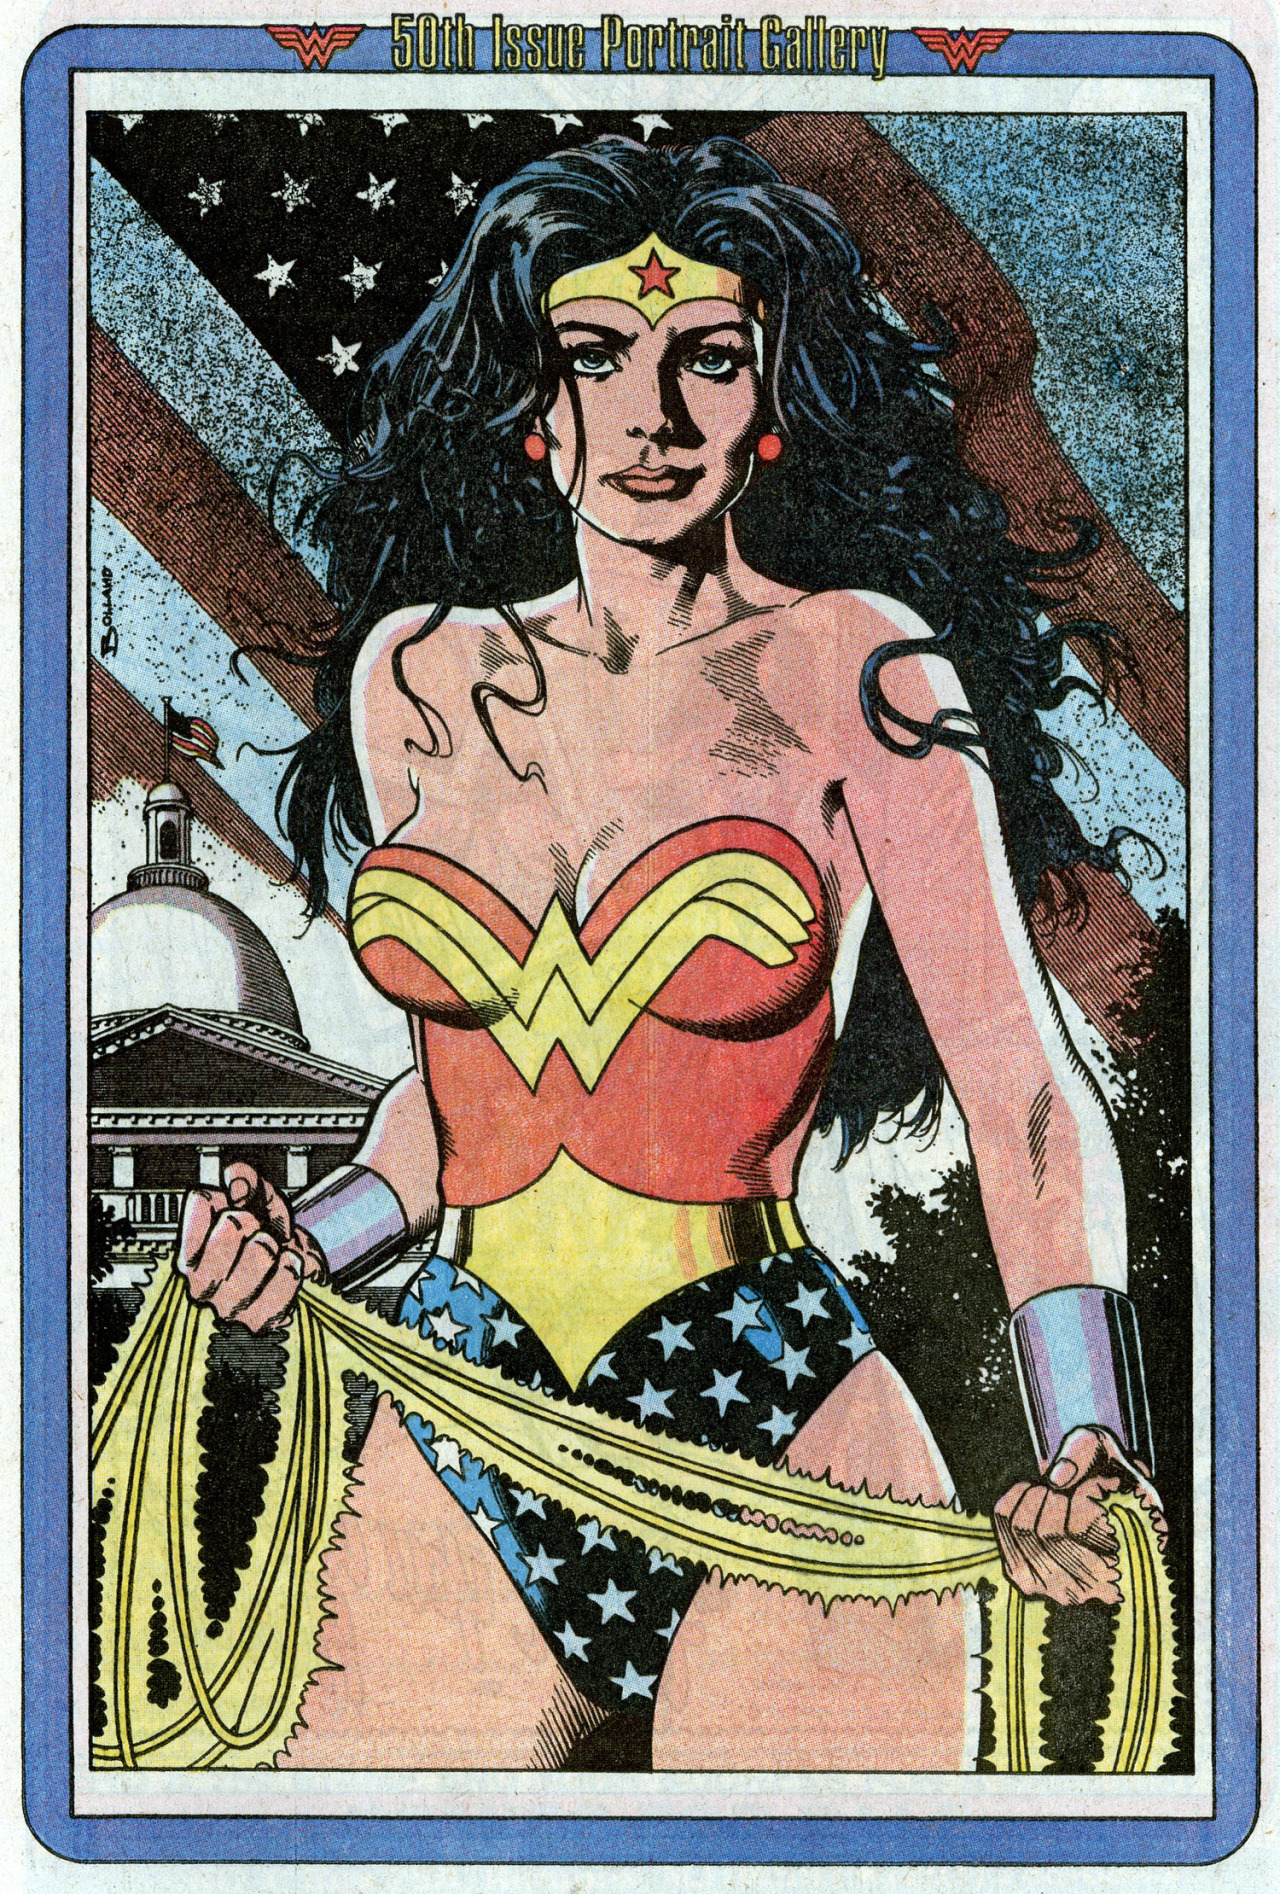 Pinup by Brian Bolland from Wonder Woman #50, 1991